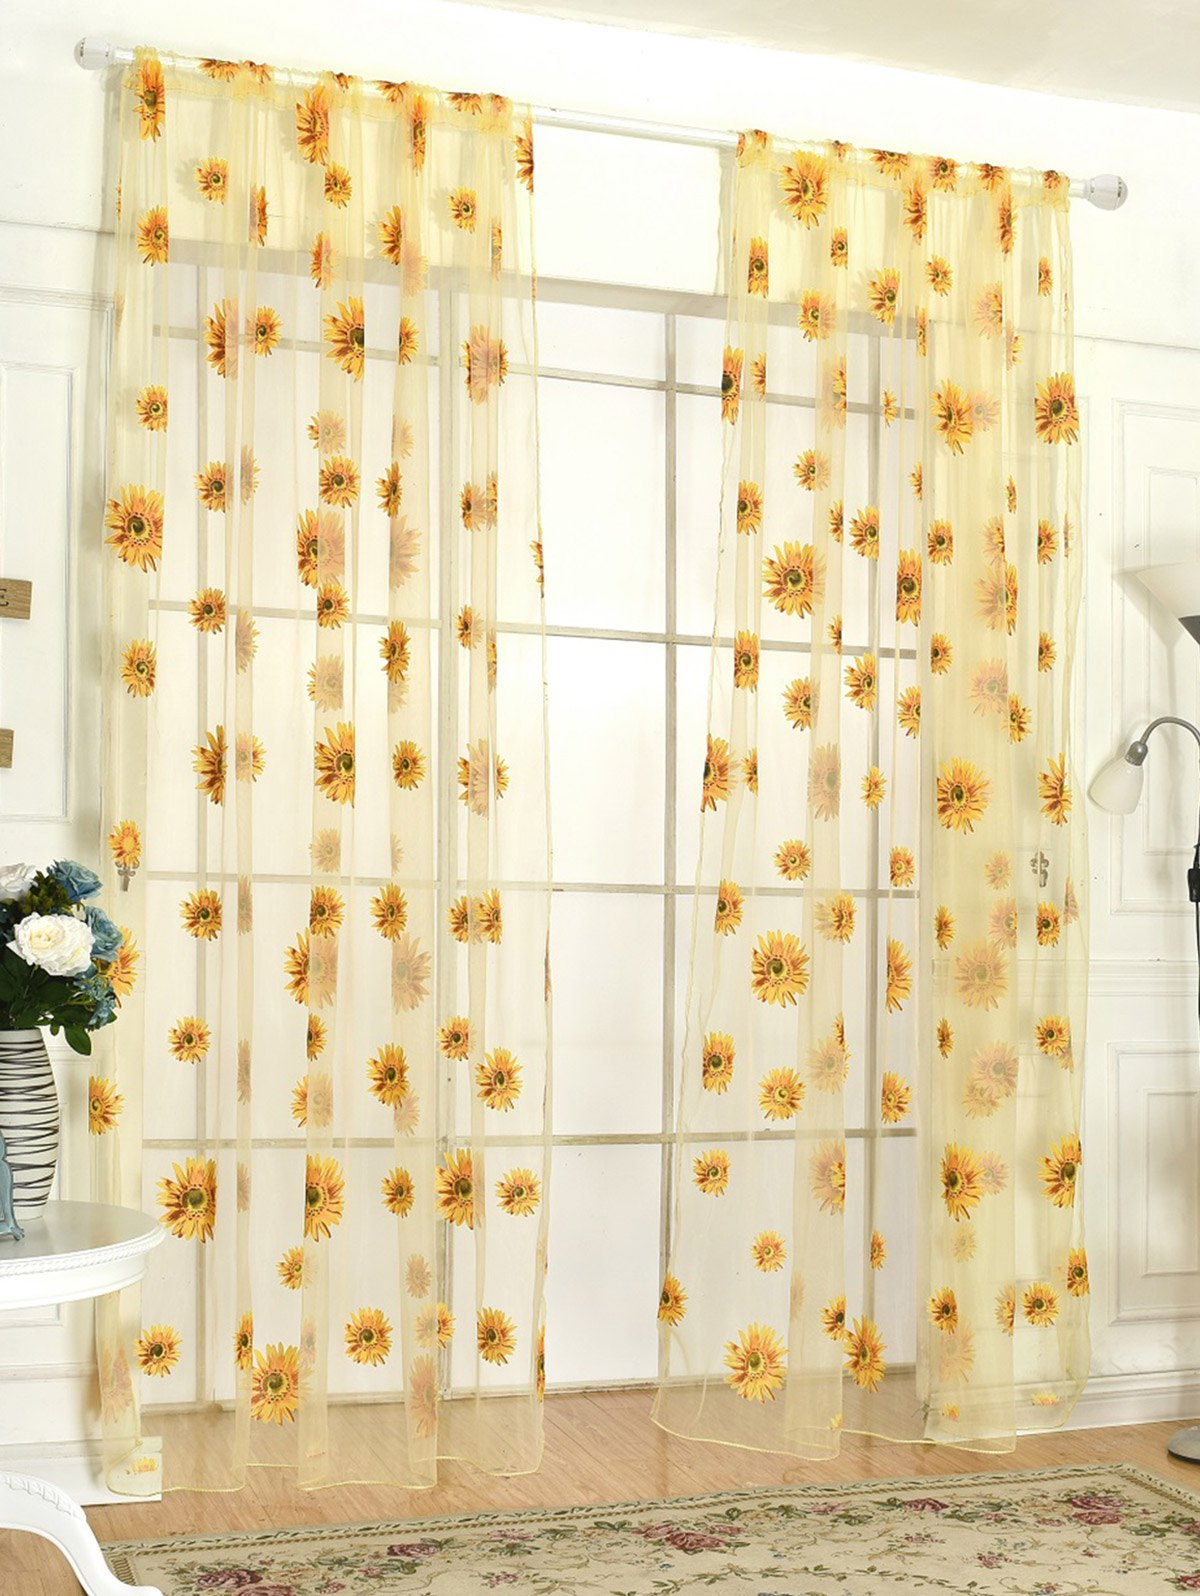 Sunflower Bedroom Decor - Home Decorating Ideas